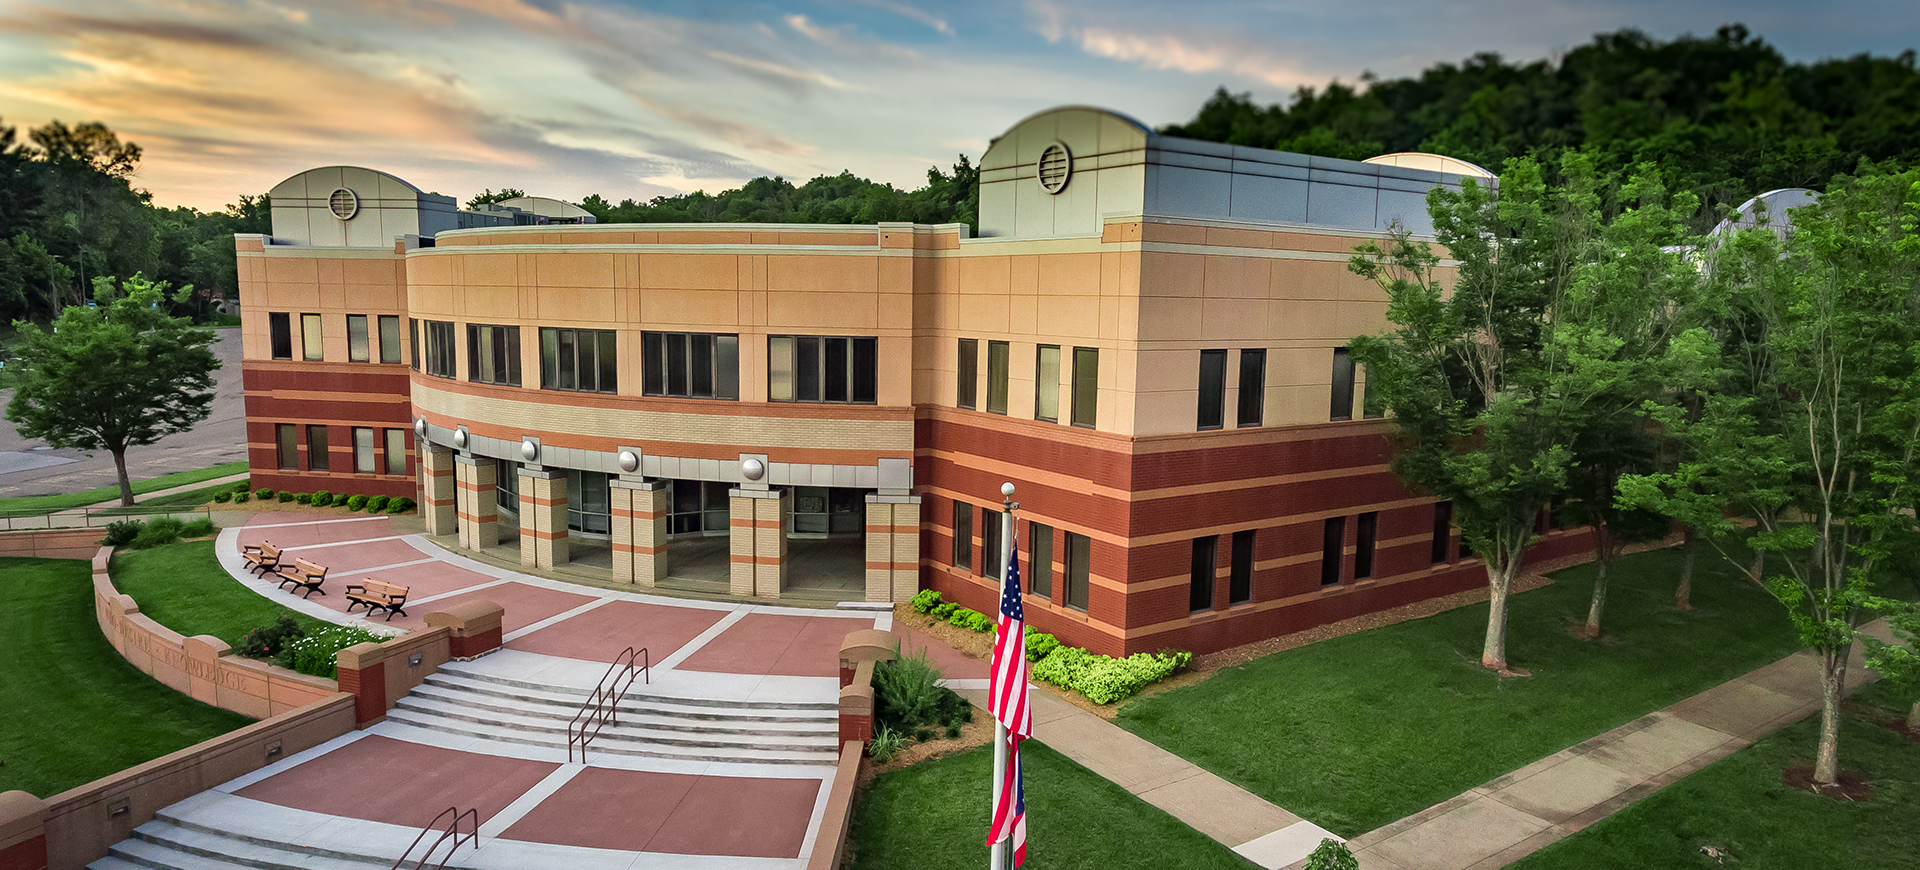 A recent study conducted by WalletHub ranked WSCC as the No. 1 community college in the state of Ohio.